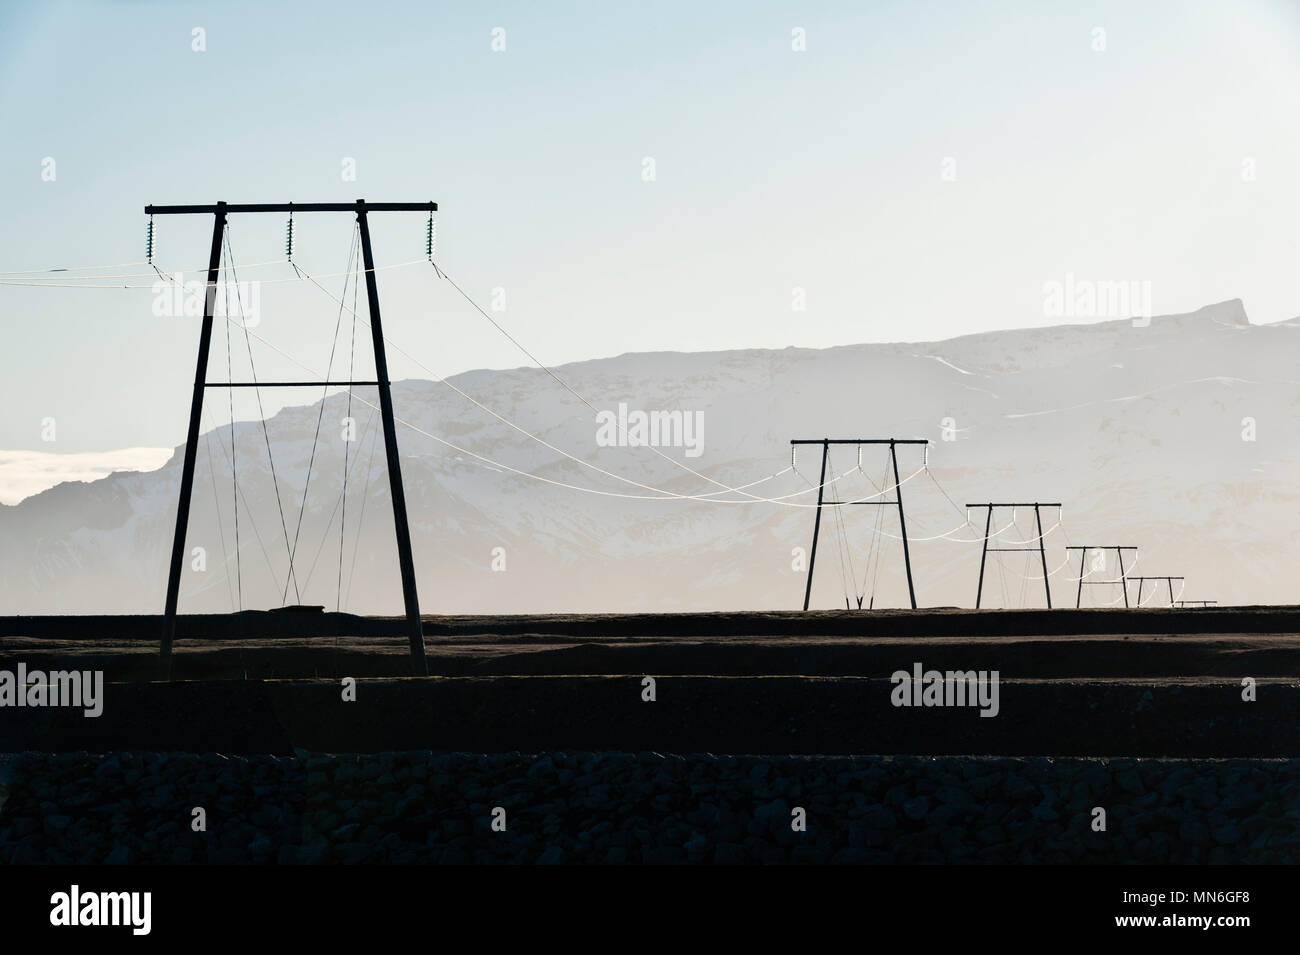 South Iceland. Electricity pylons near the coast. All electrical transmission and distribution is run by the company Landsnet - Stock Image